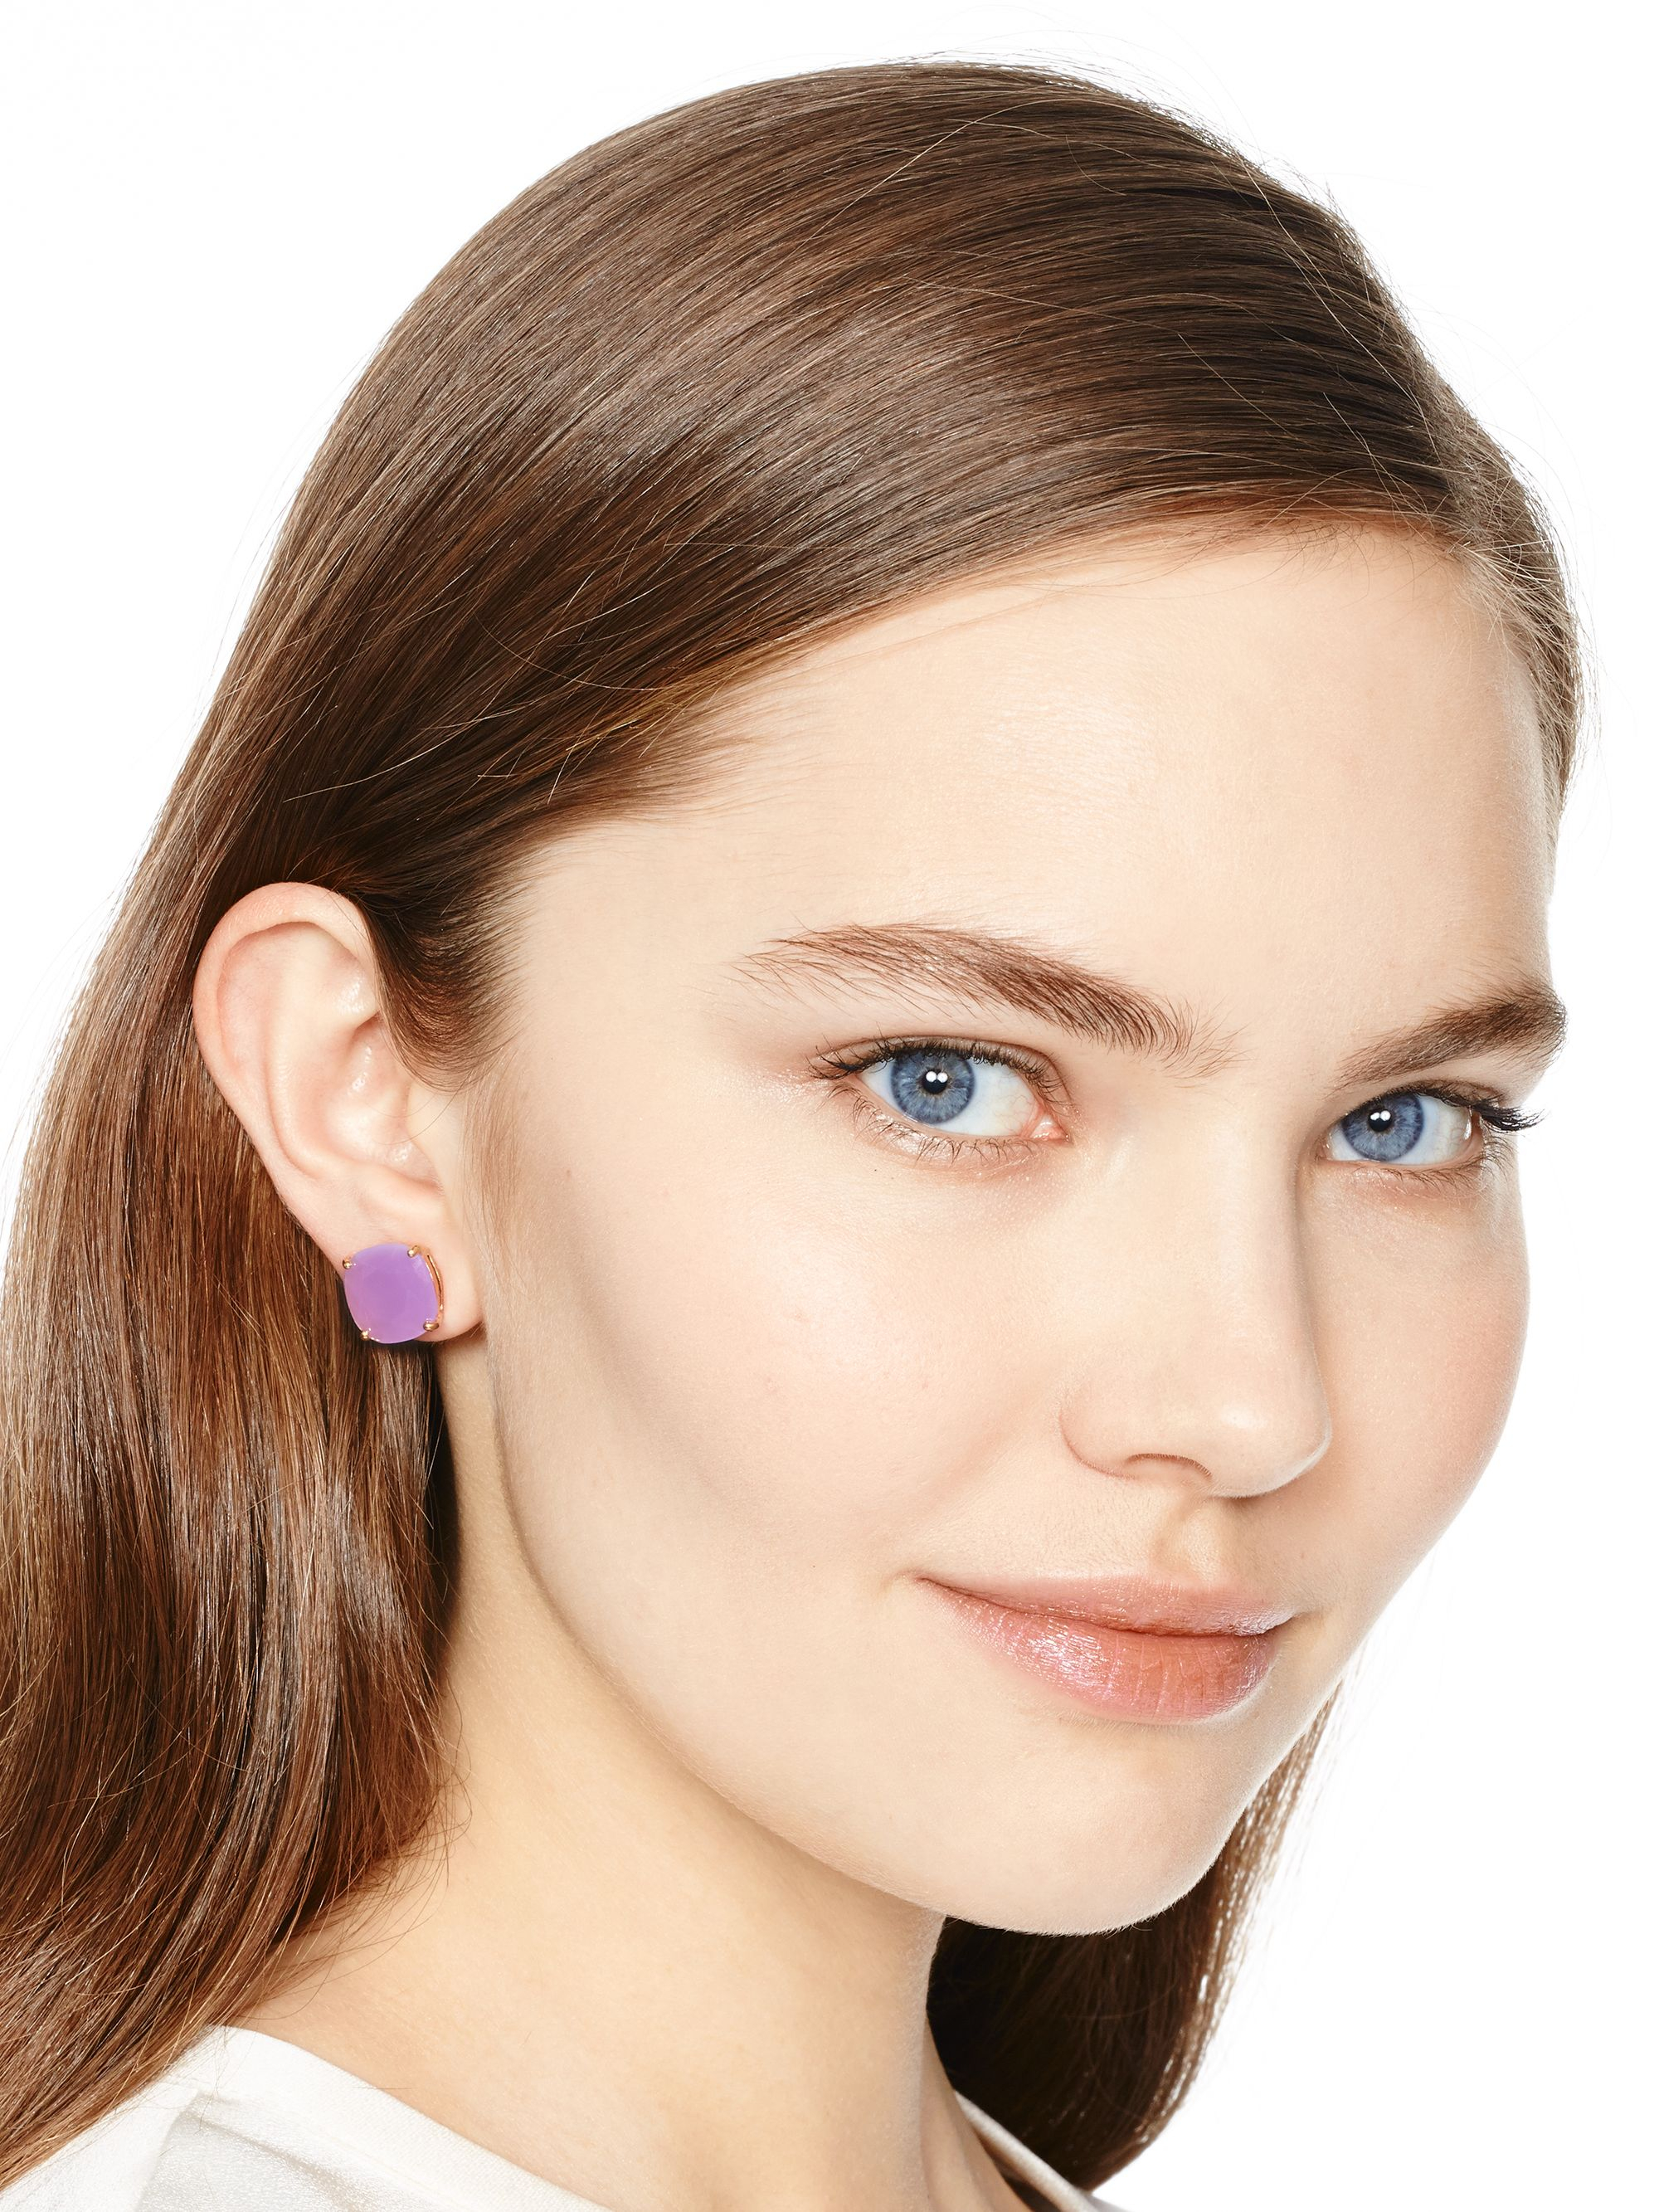 a888c63a2147b1 Kate Spade Kate Spade Earrings Small Square Studs in Purple - Lyst